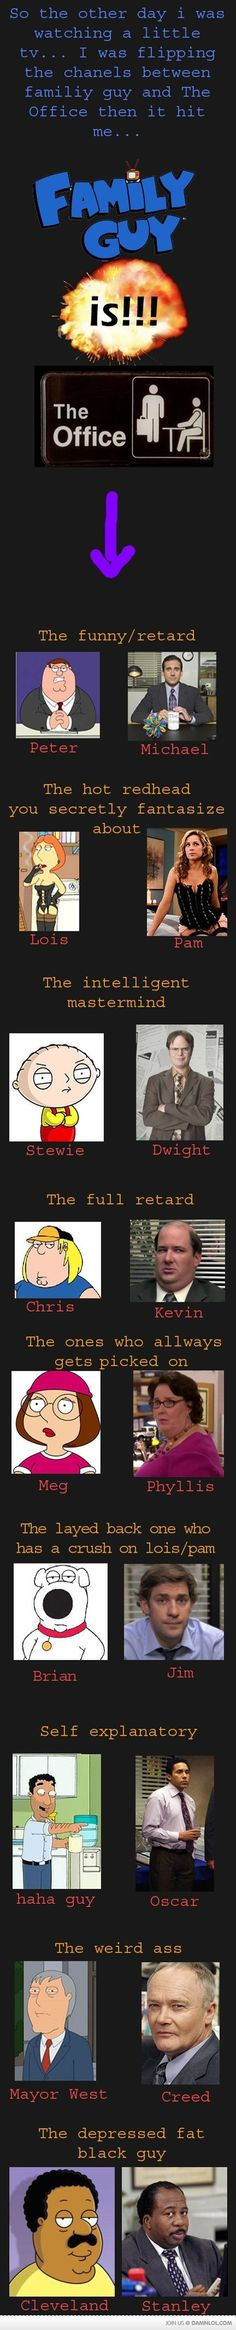 My Two Favorite Shows... This Is Beautiful<3 Hahaha